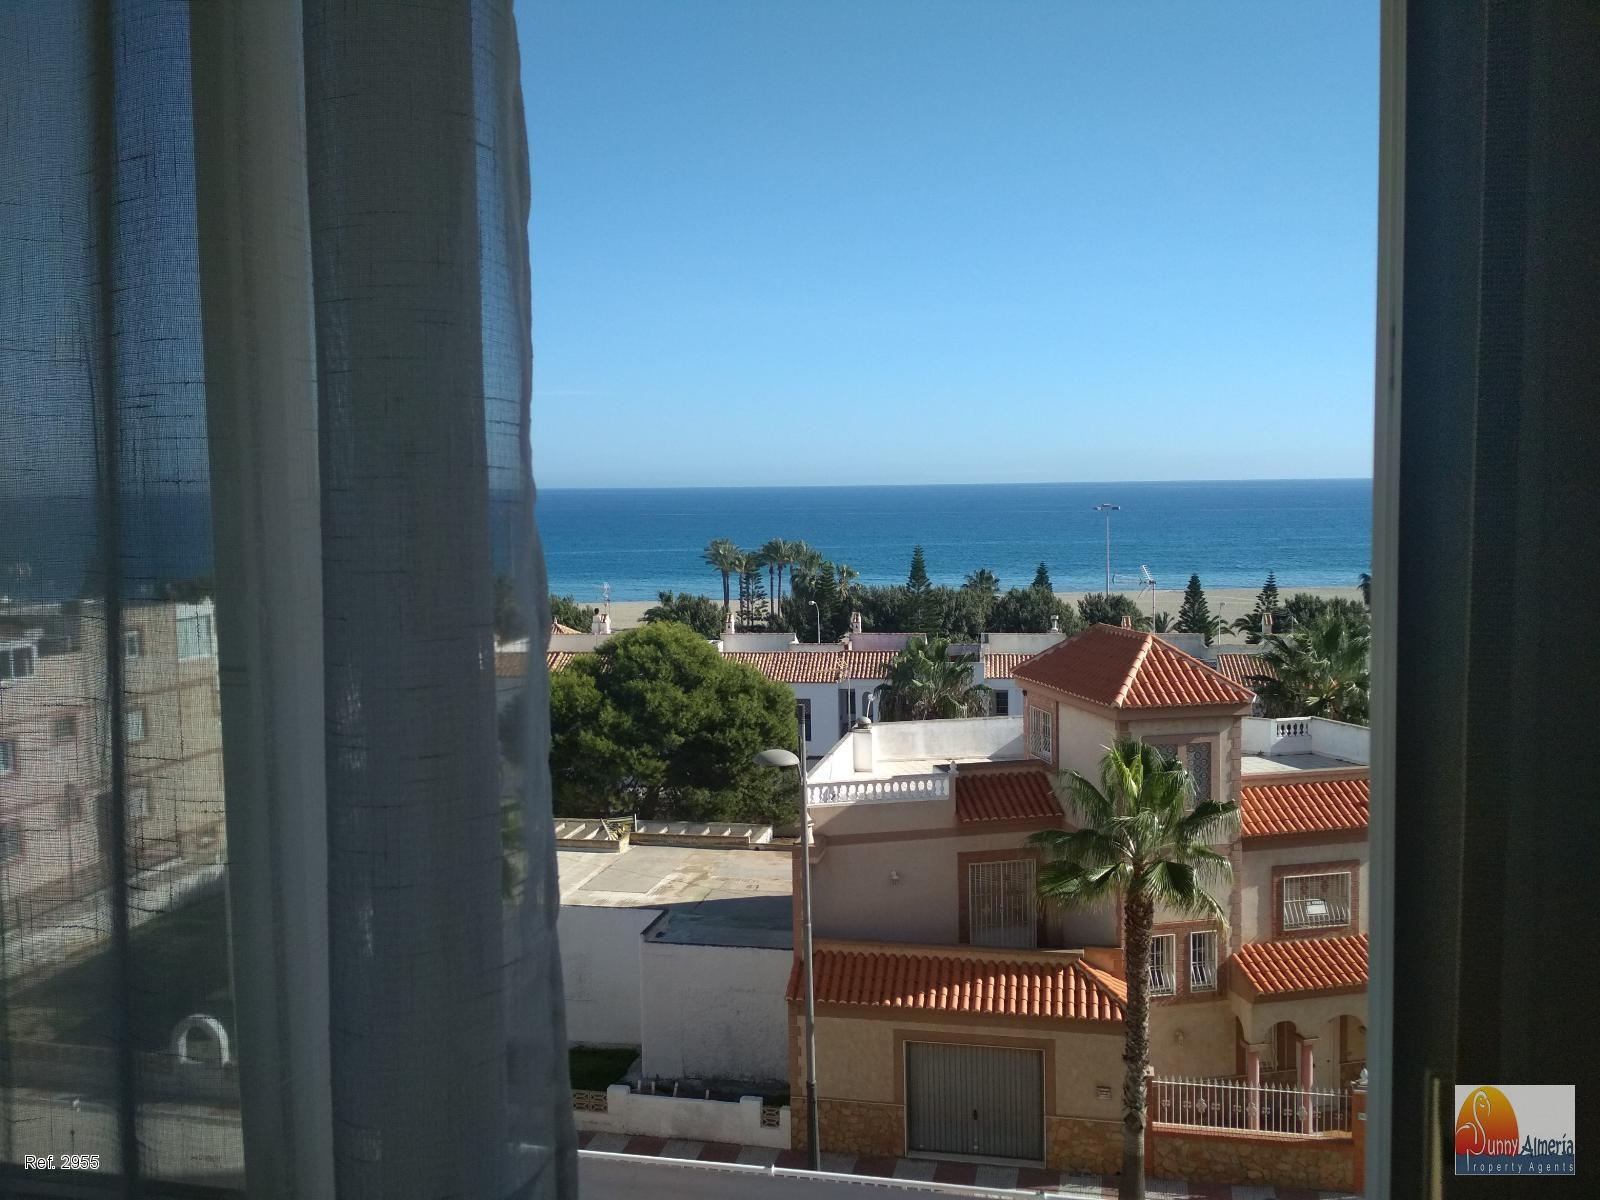 Luxury Apartment for rent in Buenavista (Roquetas de Mar), 650 €/month